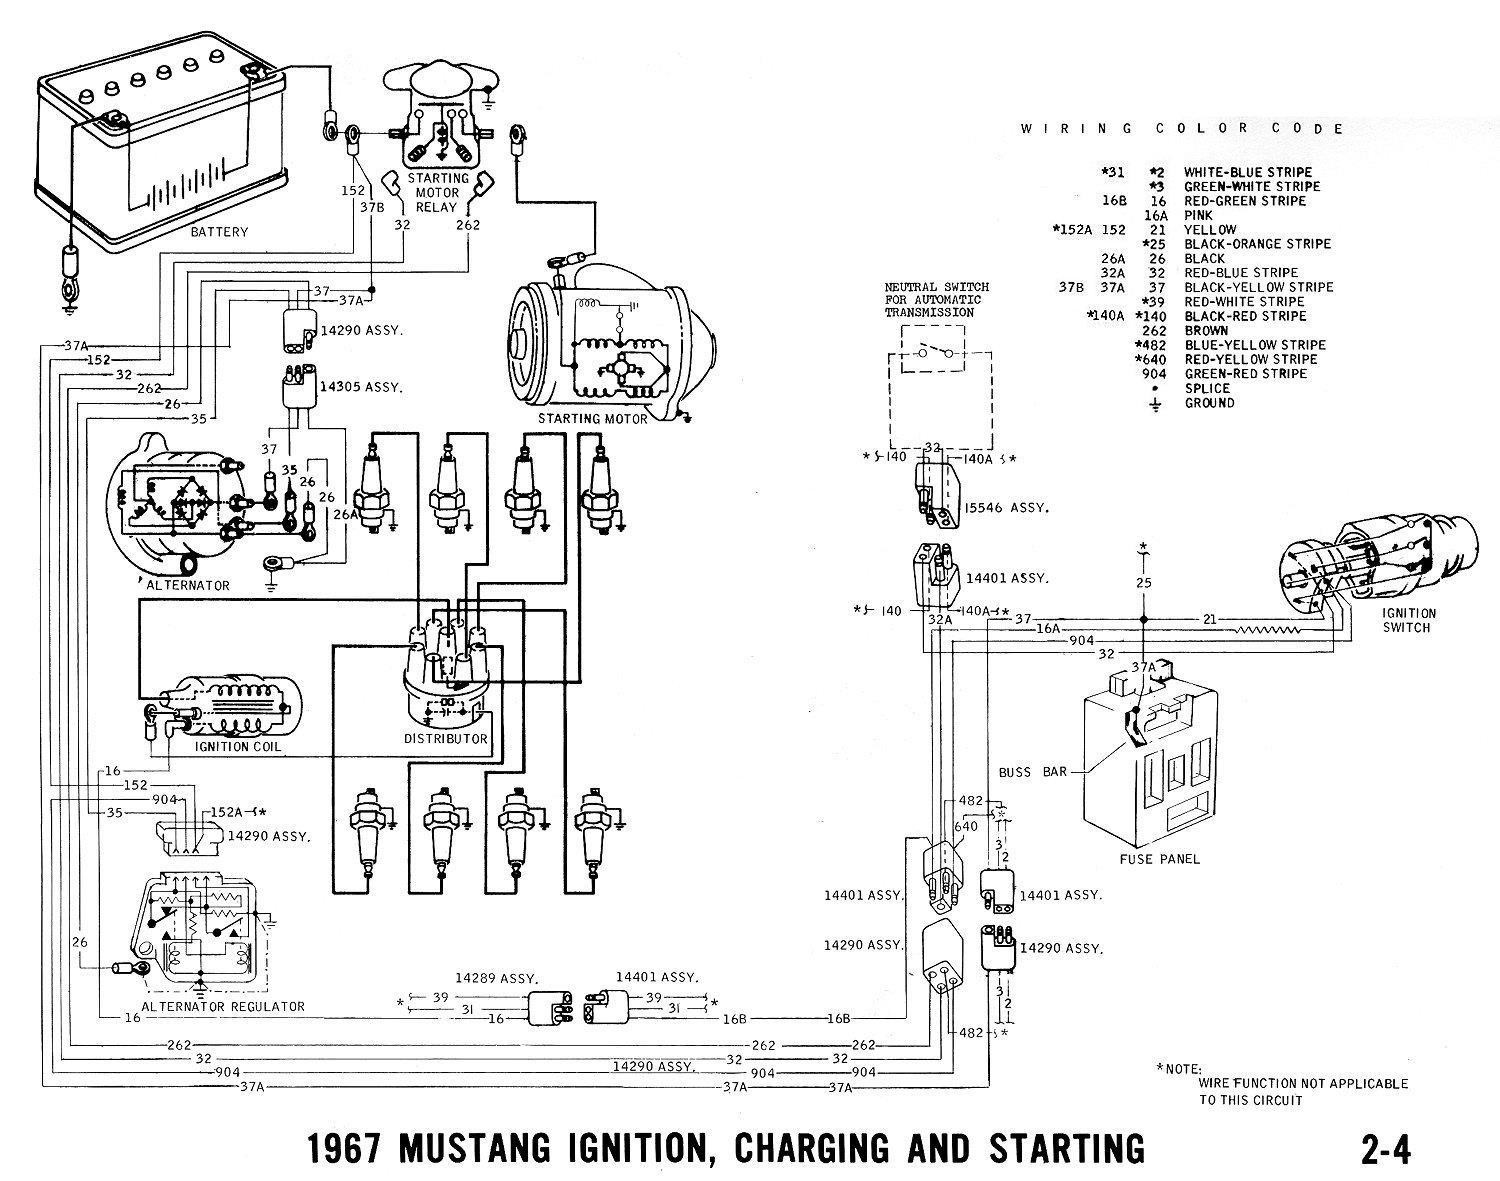 hight resolution of 1967 ford mustang wire harness diagram wiring diagram origin 1967 mustang painless wiring 1967 mustang wiring harness